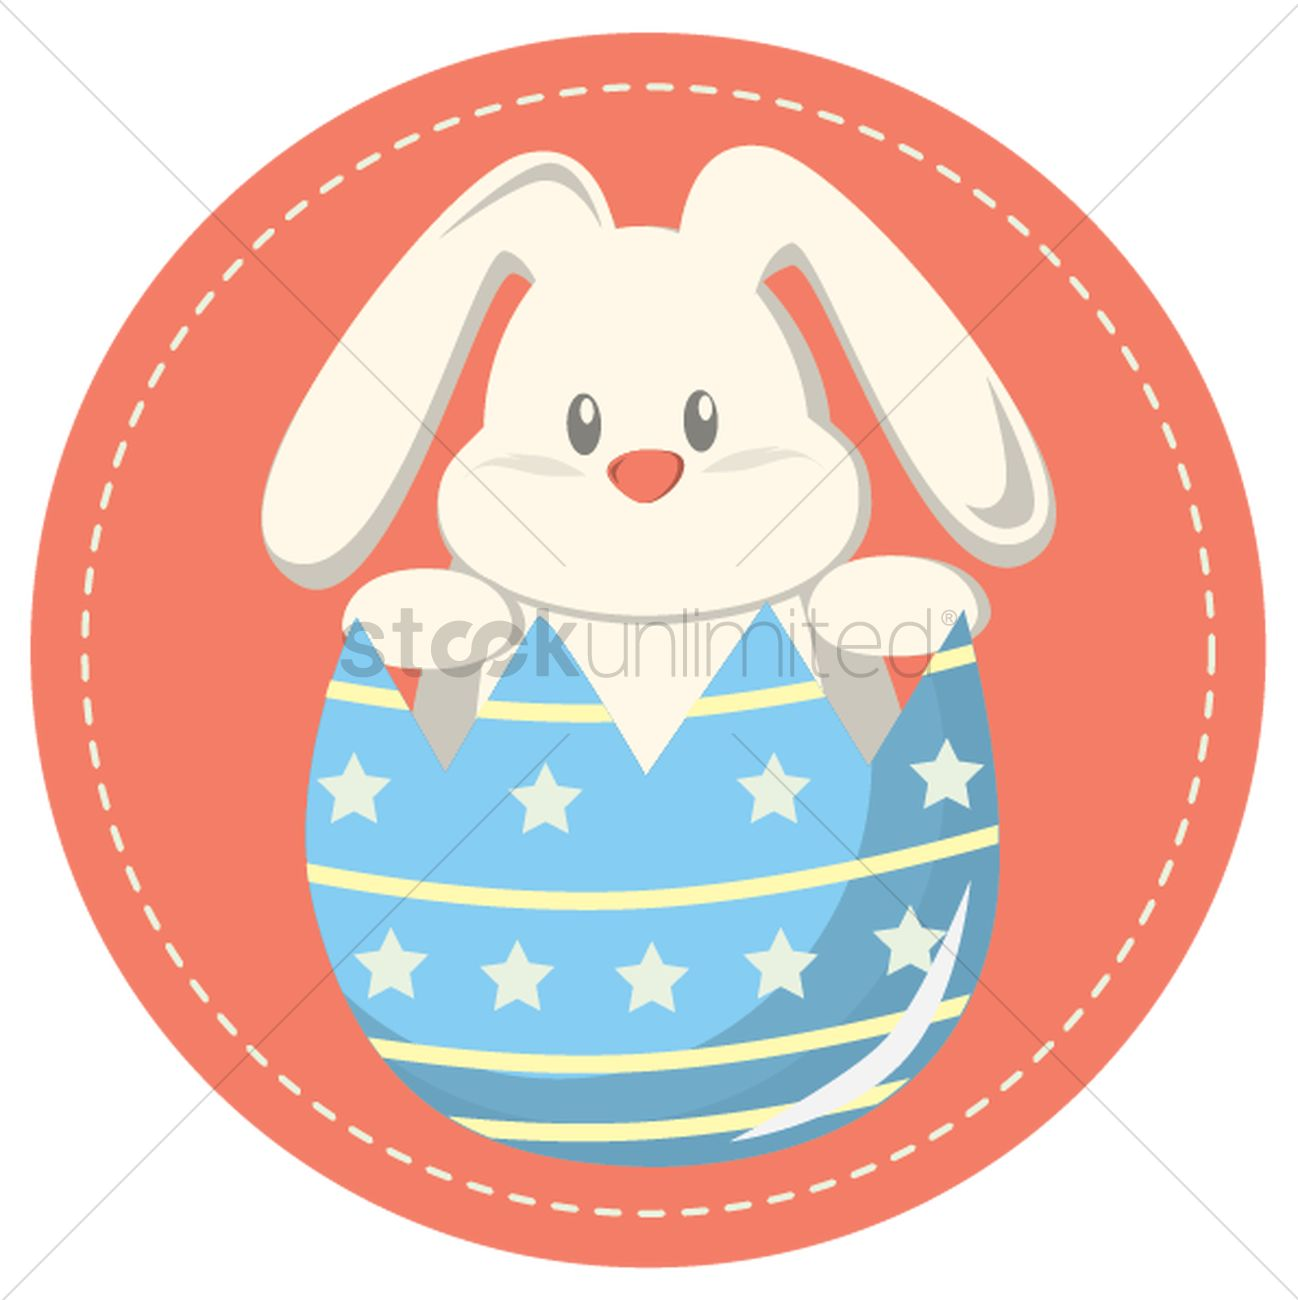 Easter bunny clipart with cracked egg image library stock Easter bunny in a cracked egg Vector Image - 1426878 | StockUnlimited image library stock